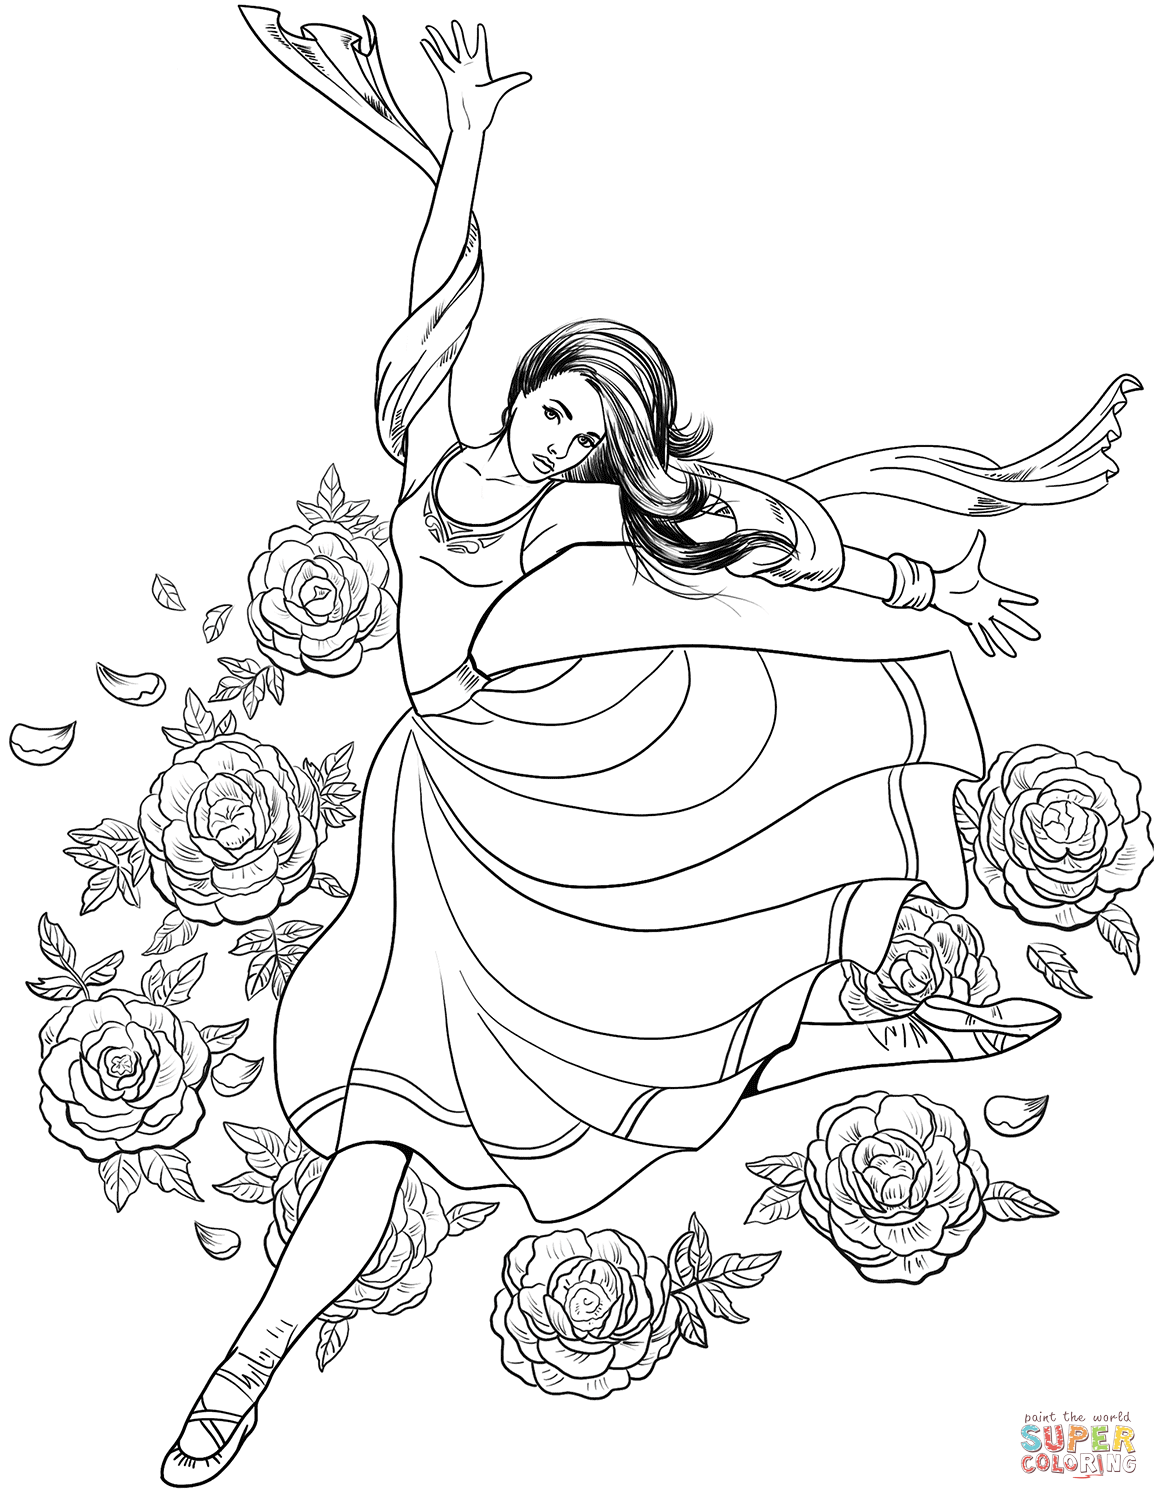 Gymnast Woman Dancing Coloring Page